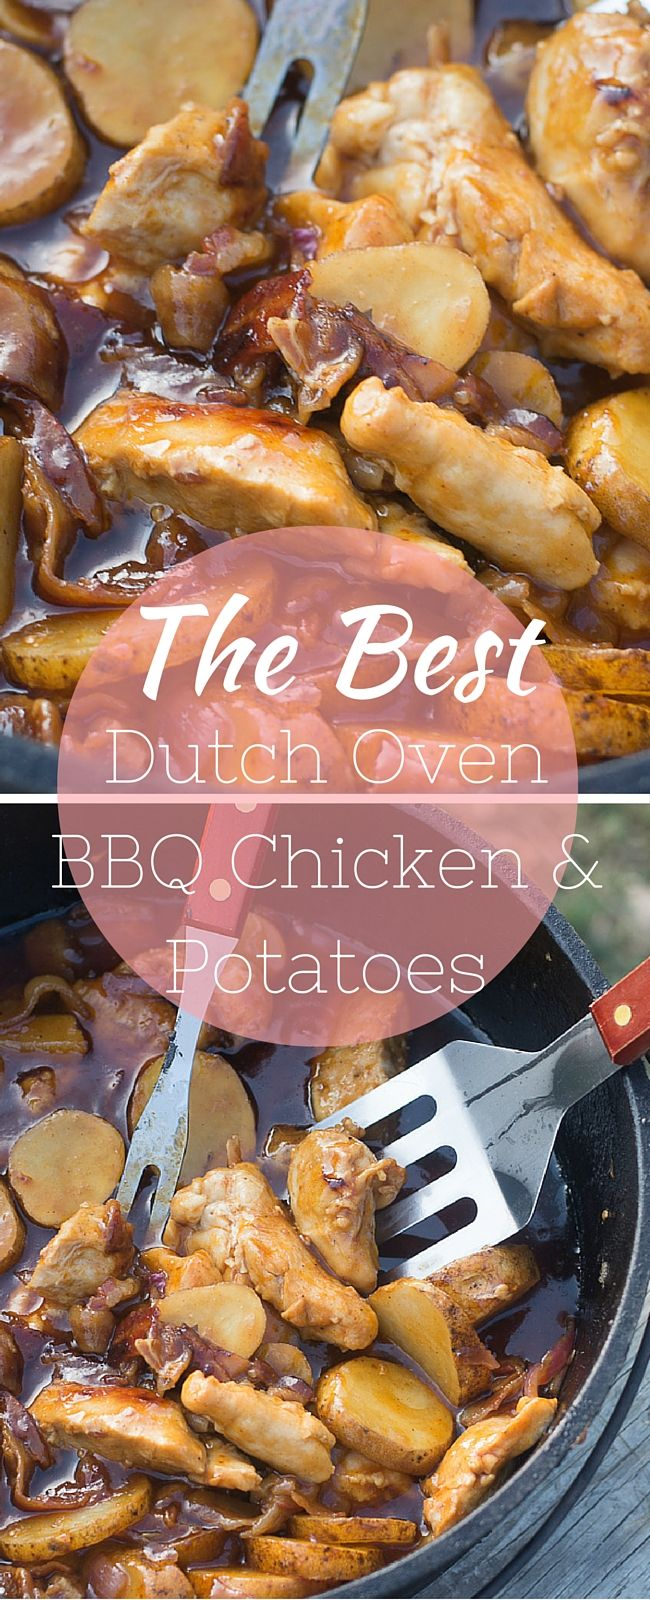 This Is The Best Dutch Oven Bbq Chicken And Potatoes